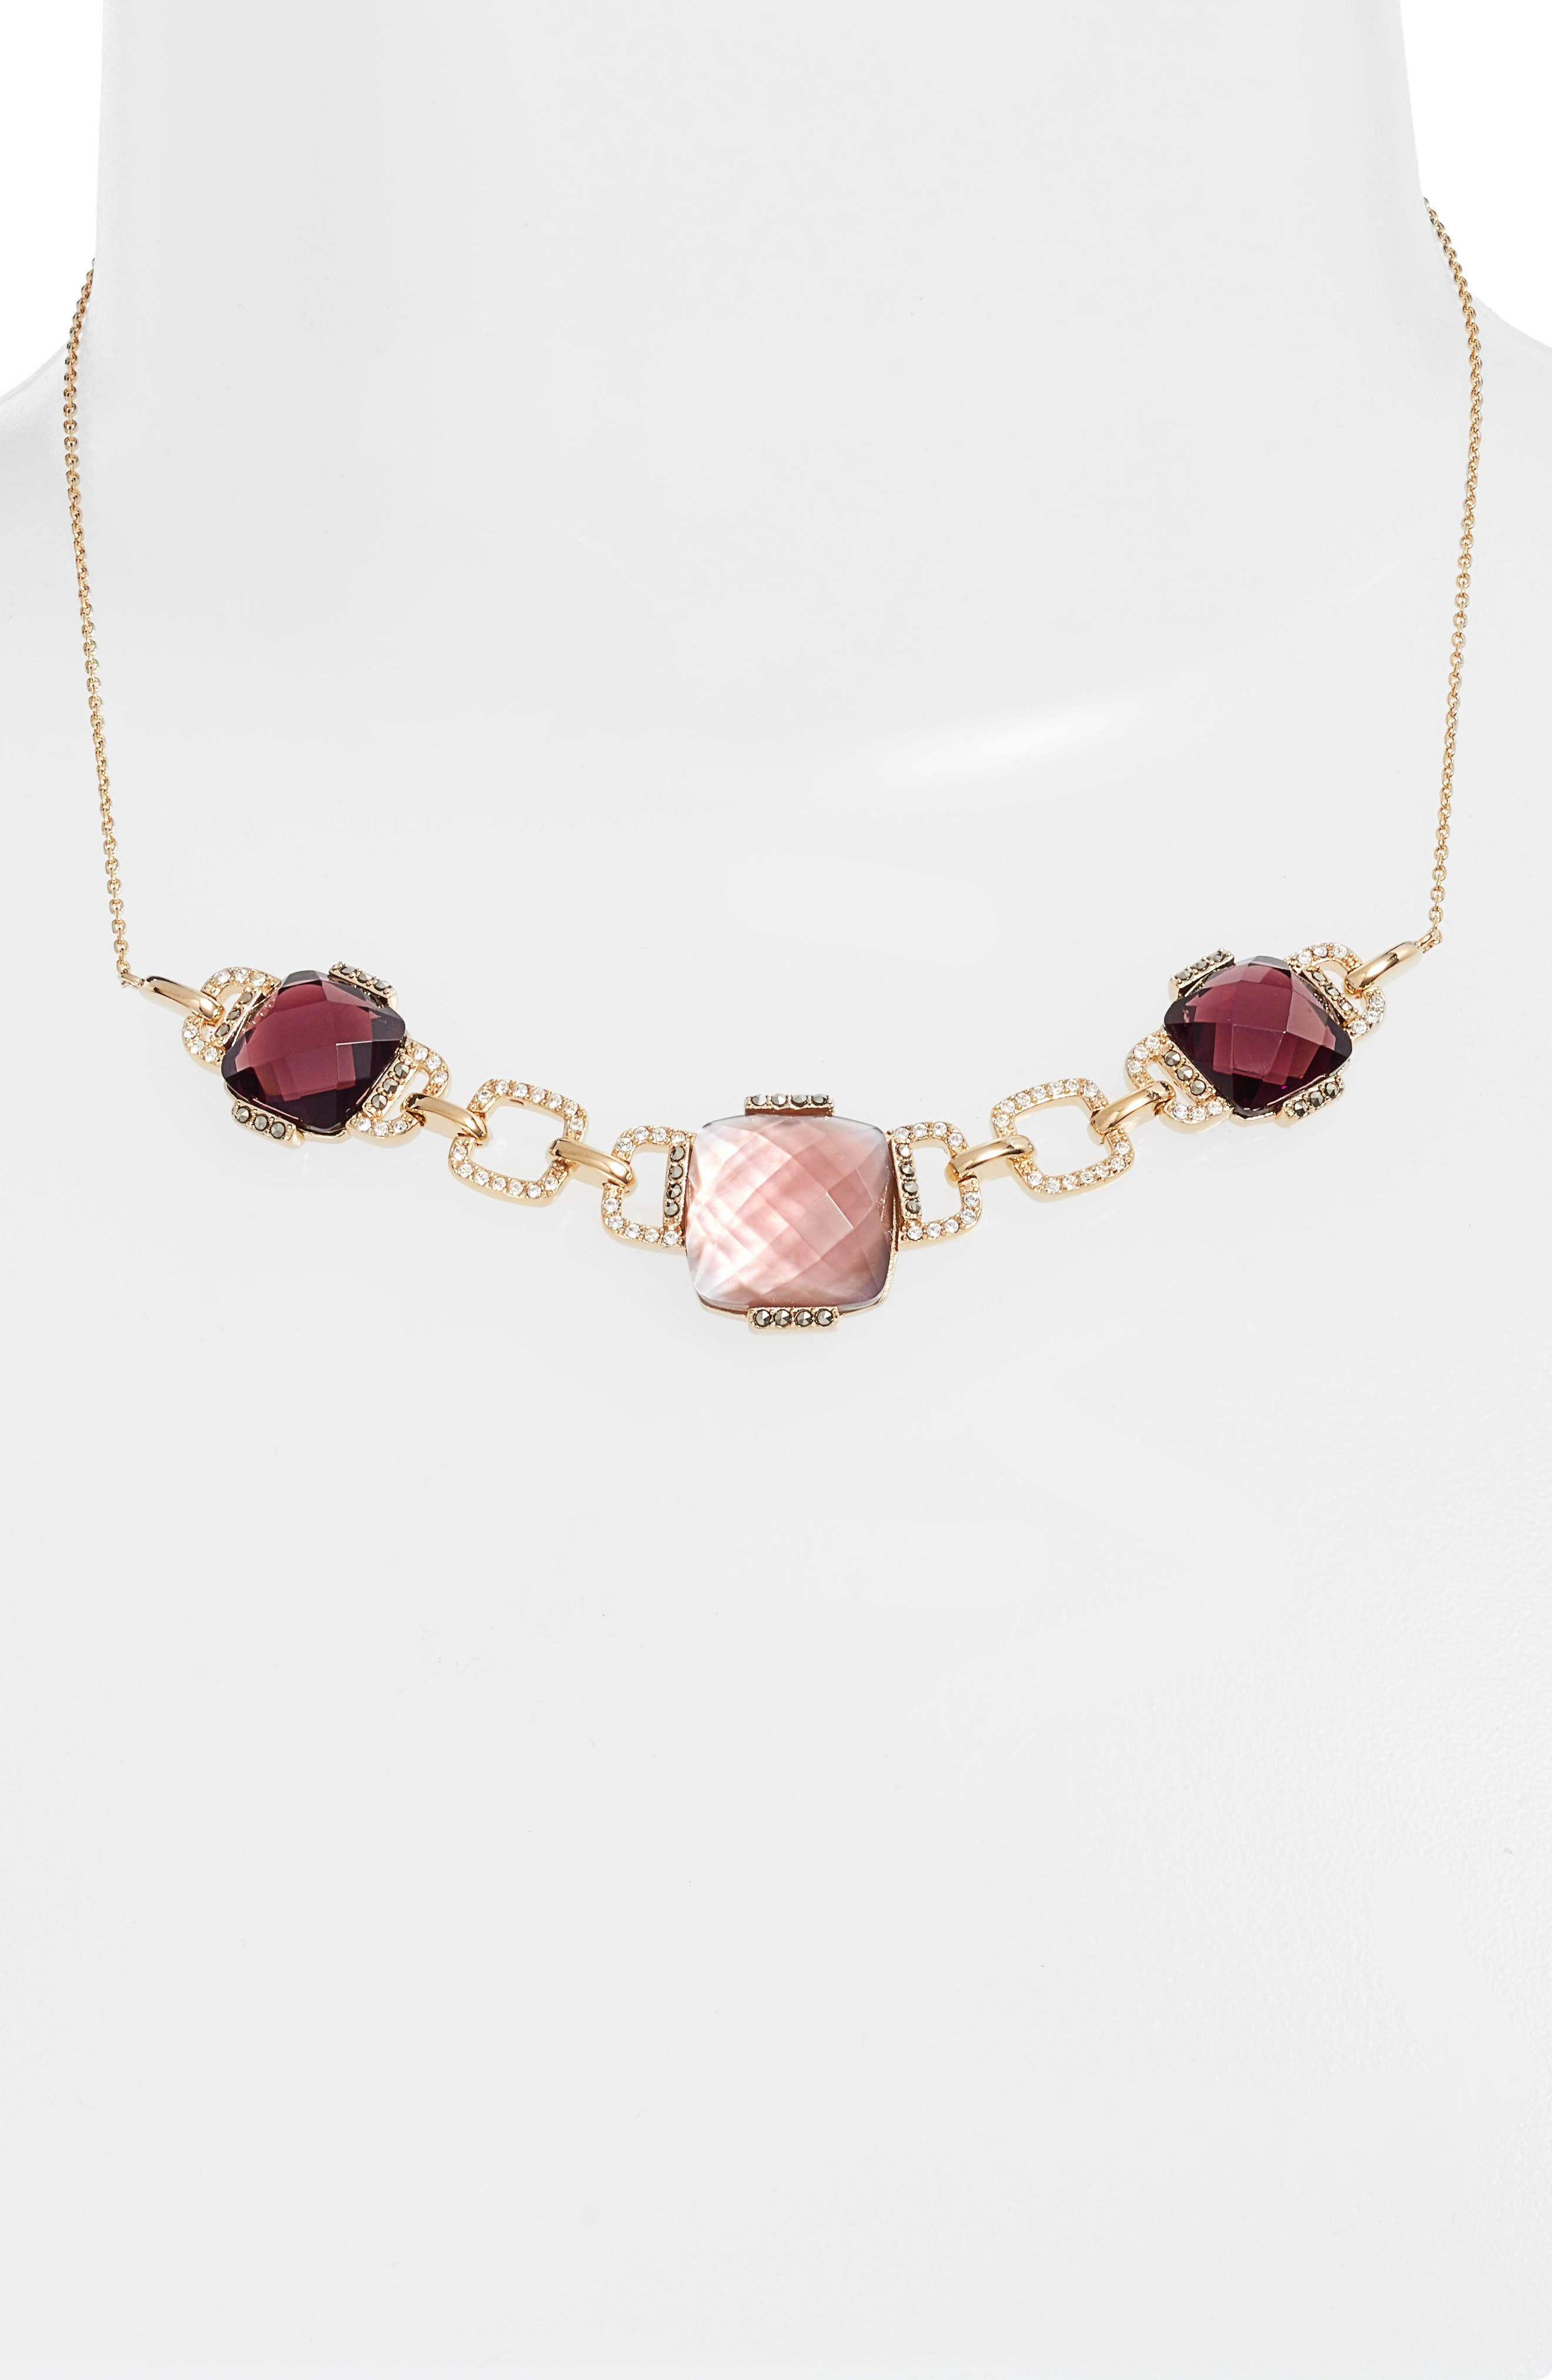 Frontal Collar Necklace,                             Main thumbnail 1, color,                             Blush/ Gold